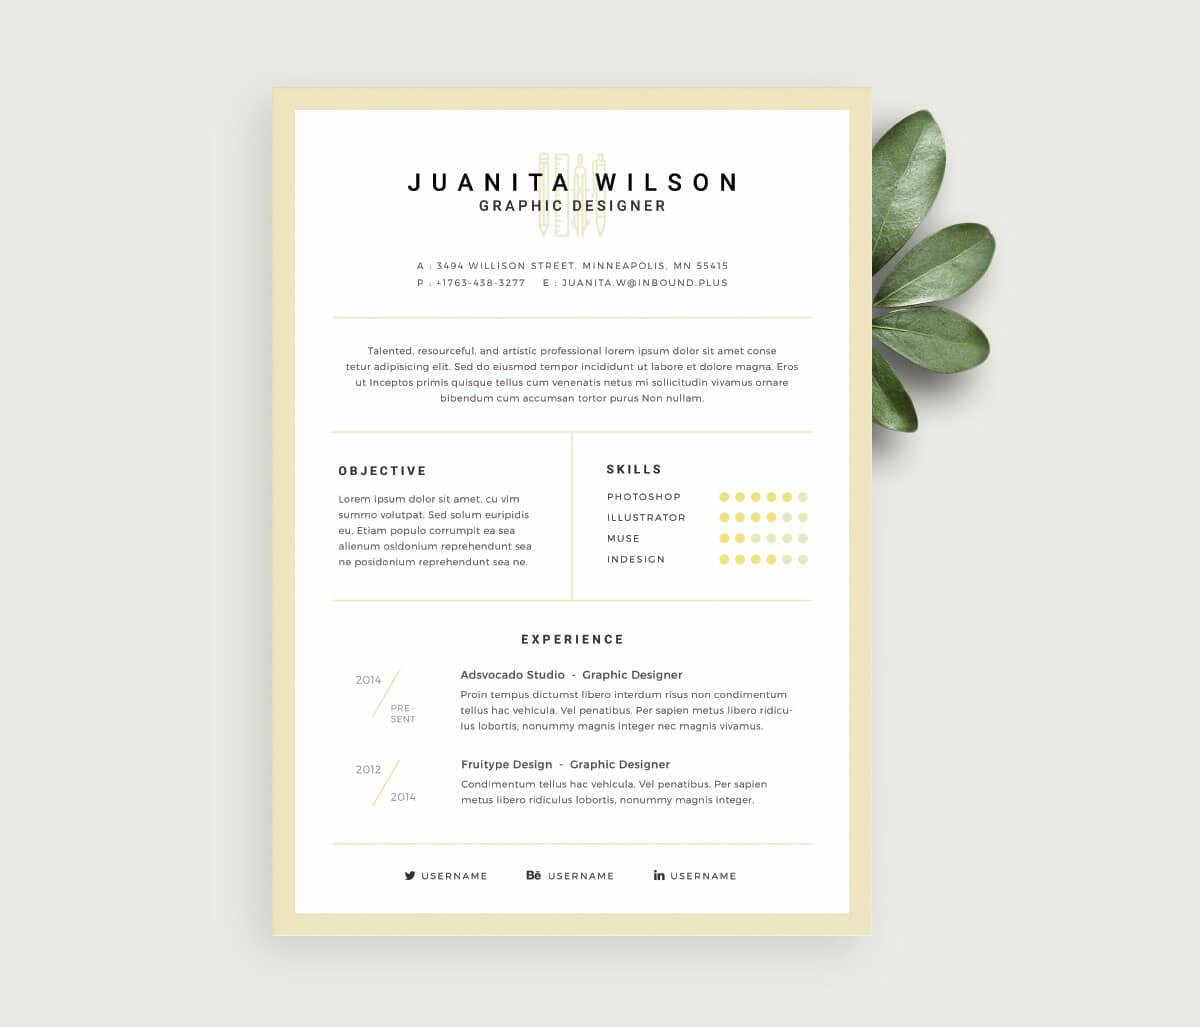 free resume templates 17 downloadable resume templates to use - Resume Template For Free